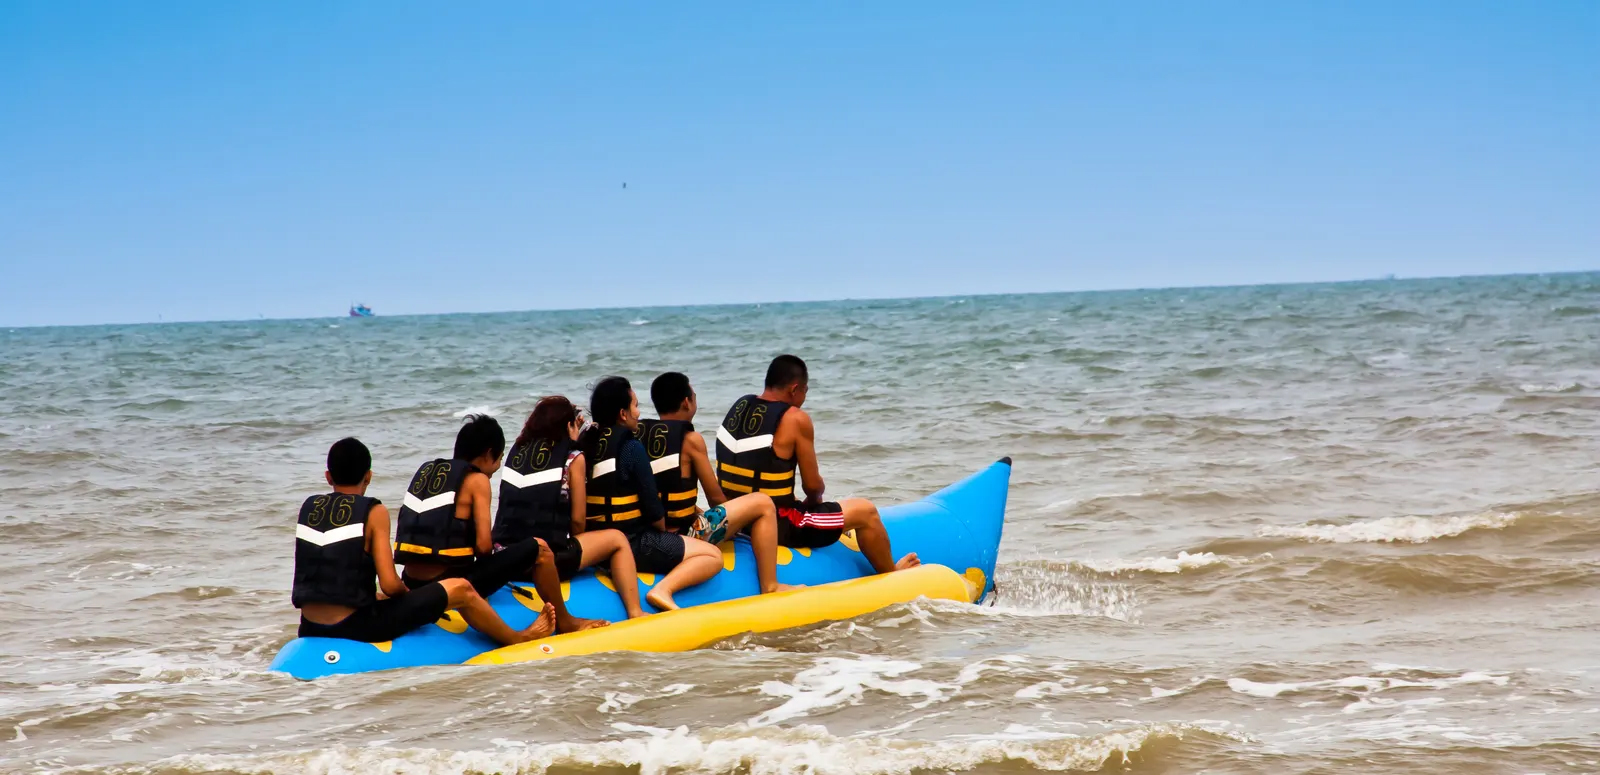 Go for Kayaking at Baina Beach - When in Goa With Friends, This is What You Should Do